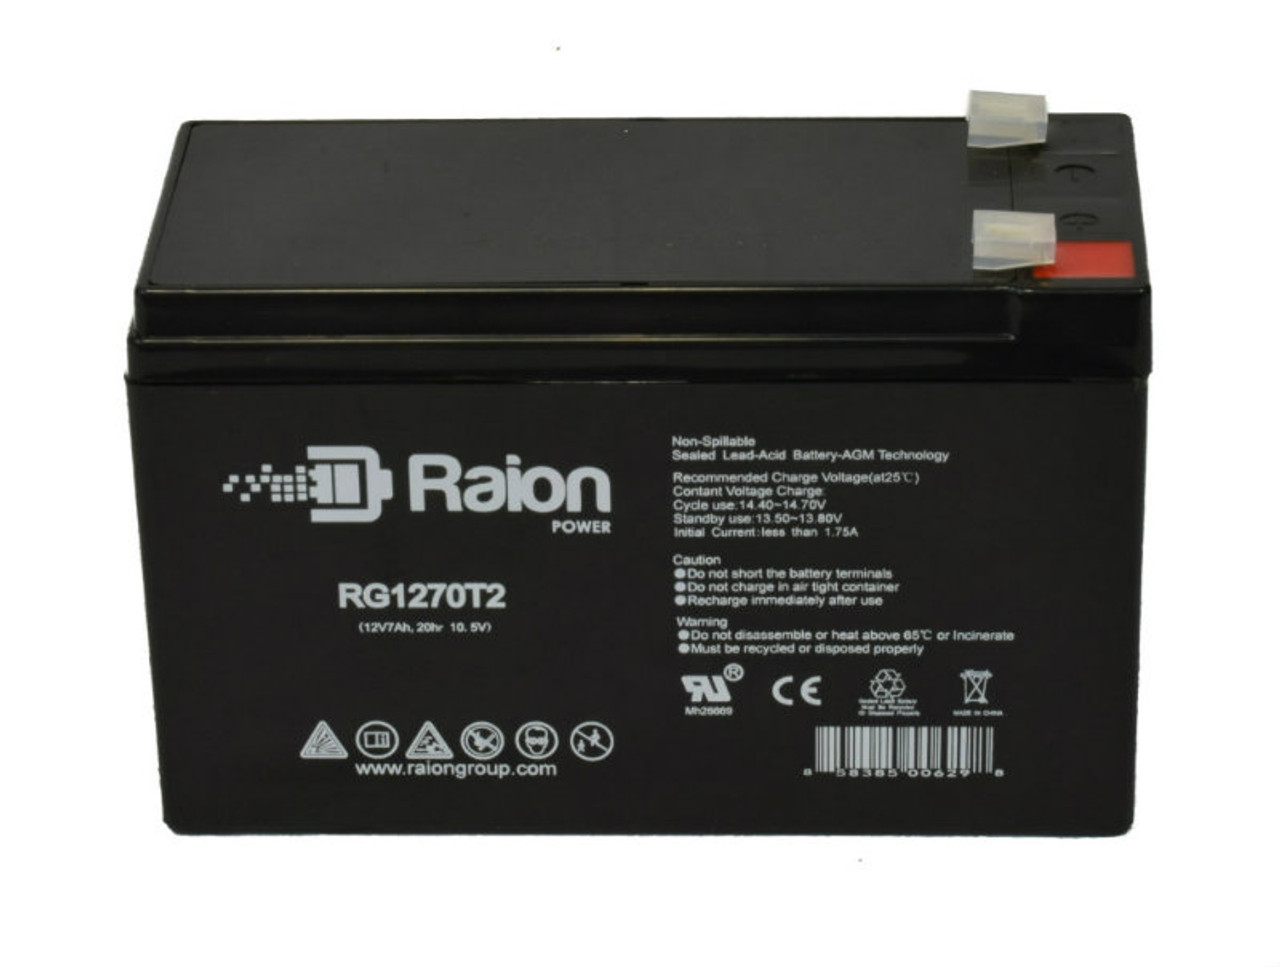 Raion Power 12V 7Ah SLA Battery With T1 Terminals For Alexander G1270